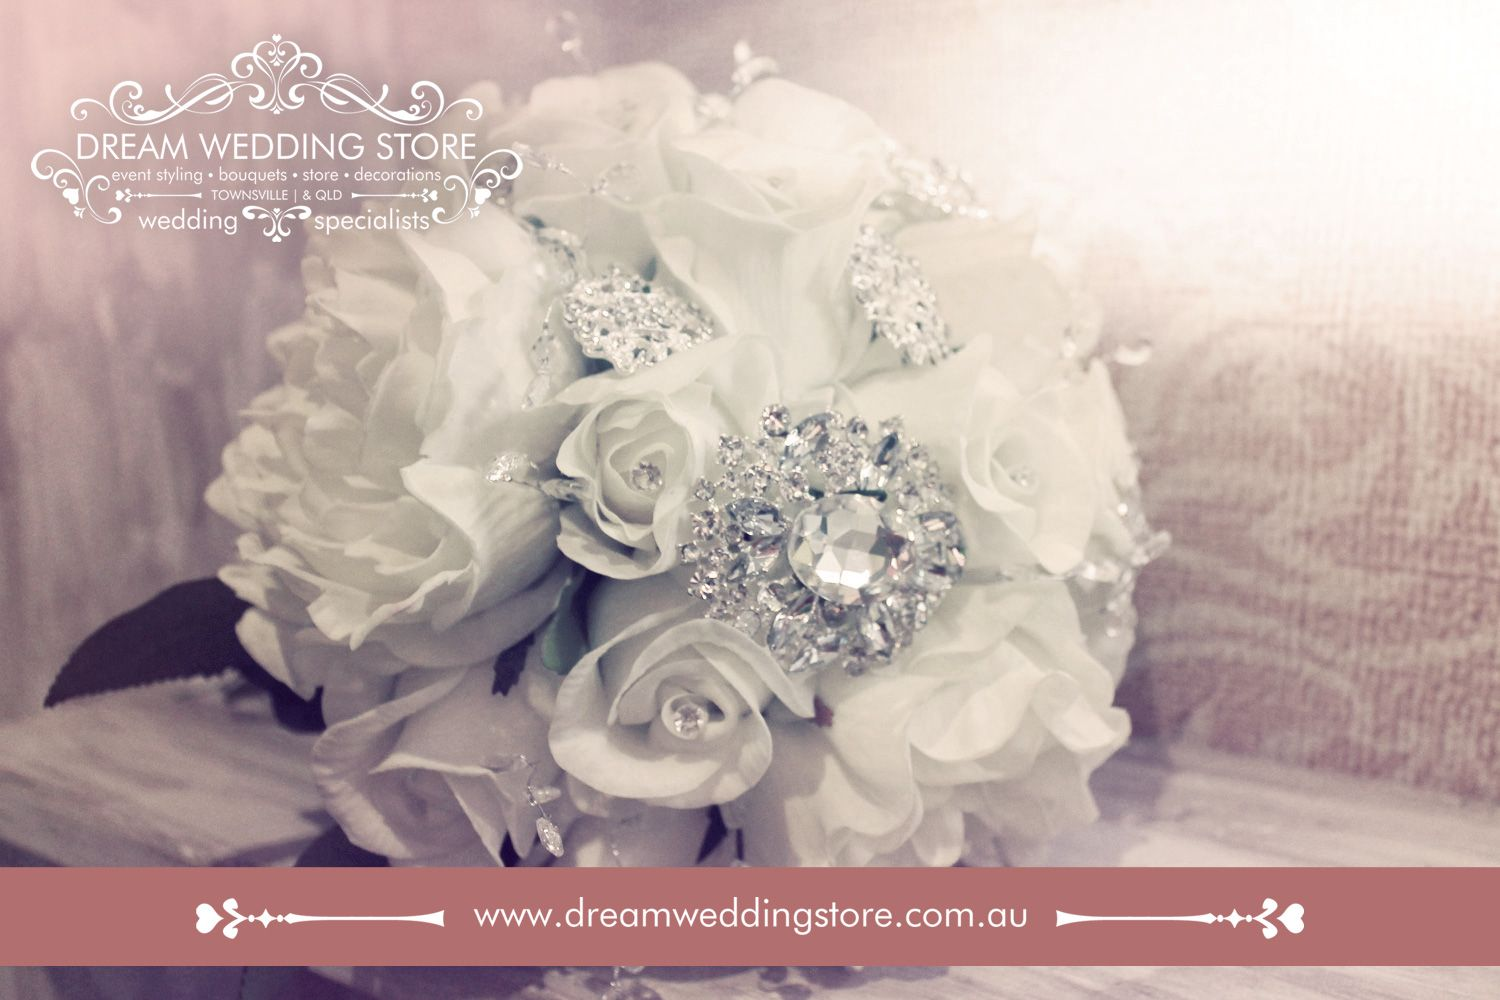 Pin By Dream Wedding Store On Artificial Flower Bouquets By Dream Wedding Store Townsville Queensland We Post Australia Wide Wedding Store Artificial Flower Bouquet Handmade Wedding